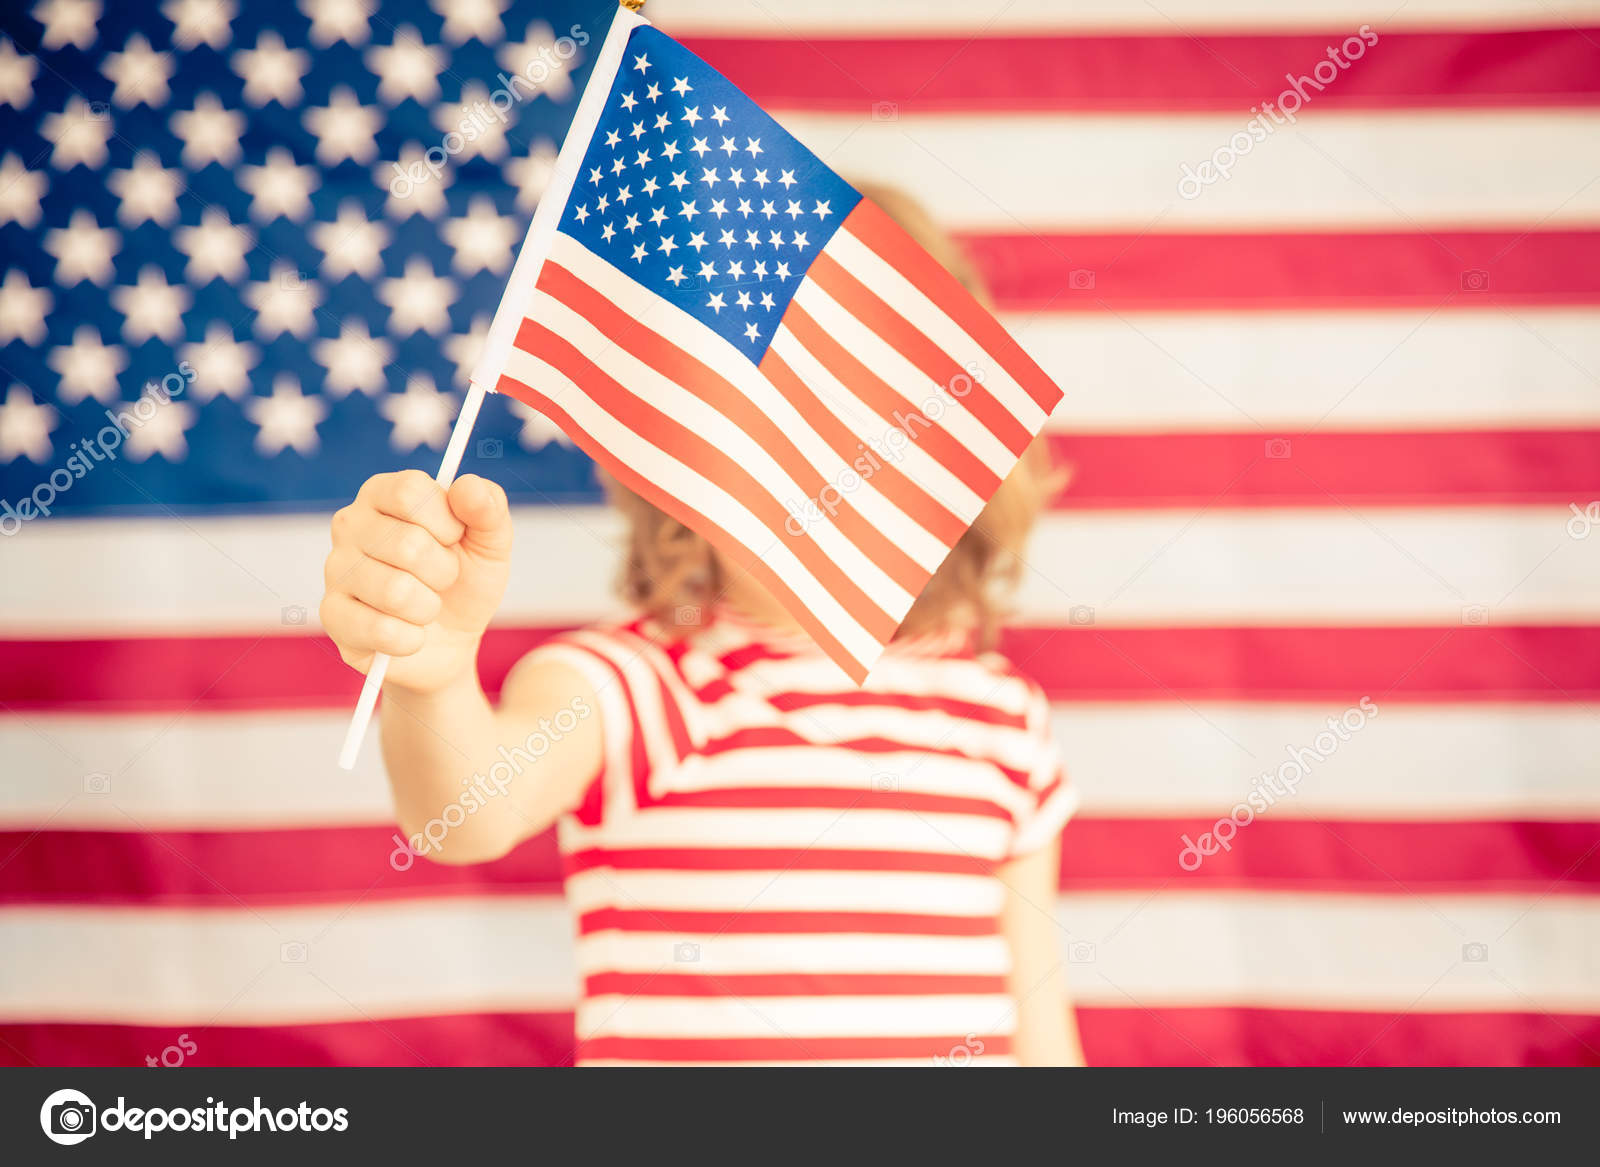 Child Holding American Flag 4th July Independence Day Holiday